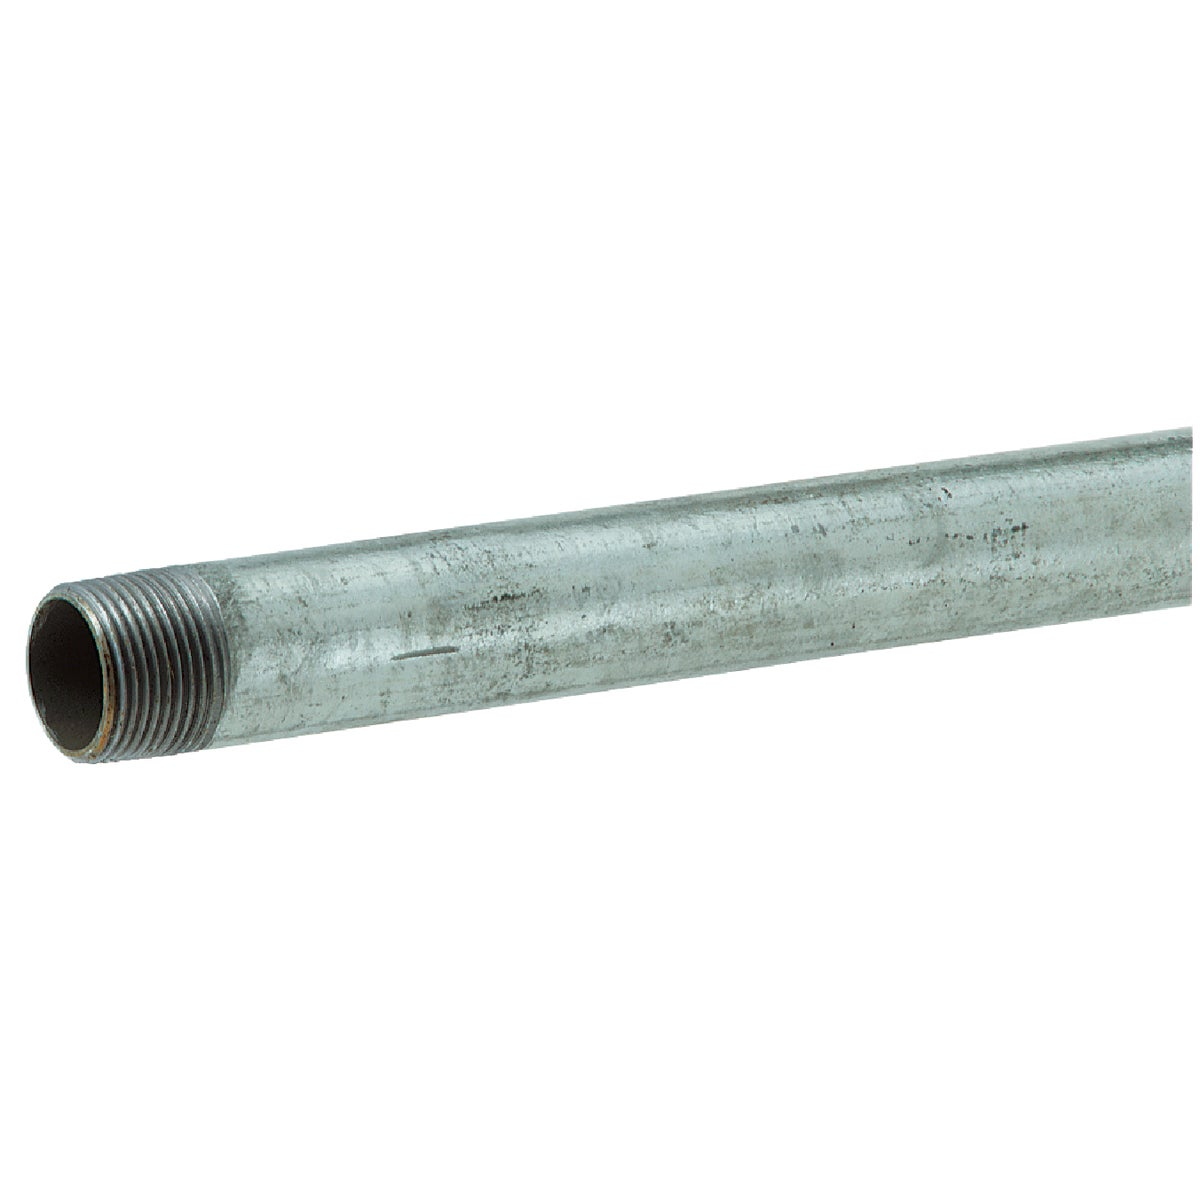 1-1/4X24GALV RDI-CT PIPE - 11/4X24 by Southland Pipe Nippl